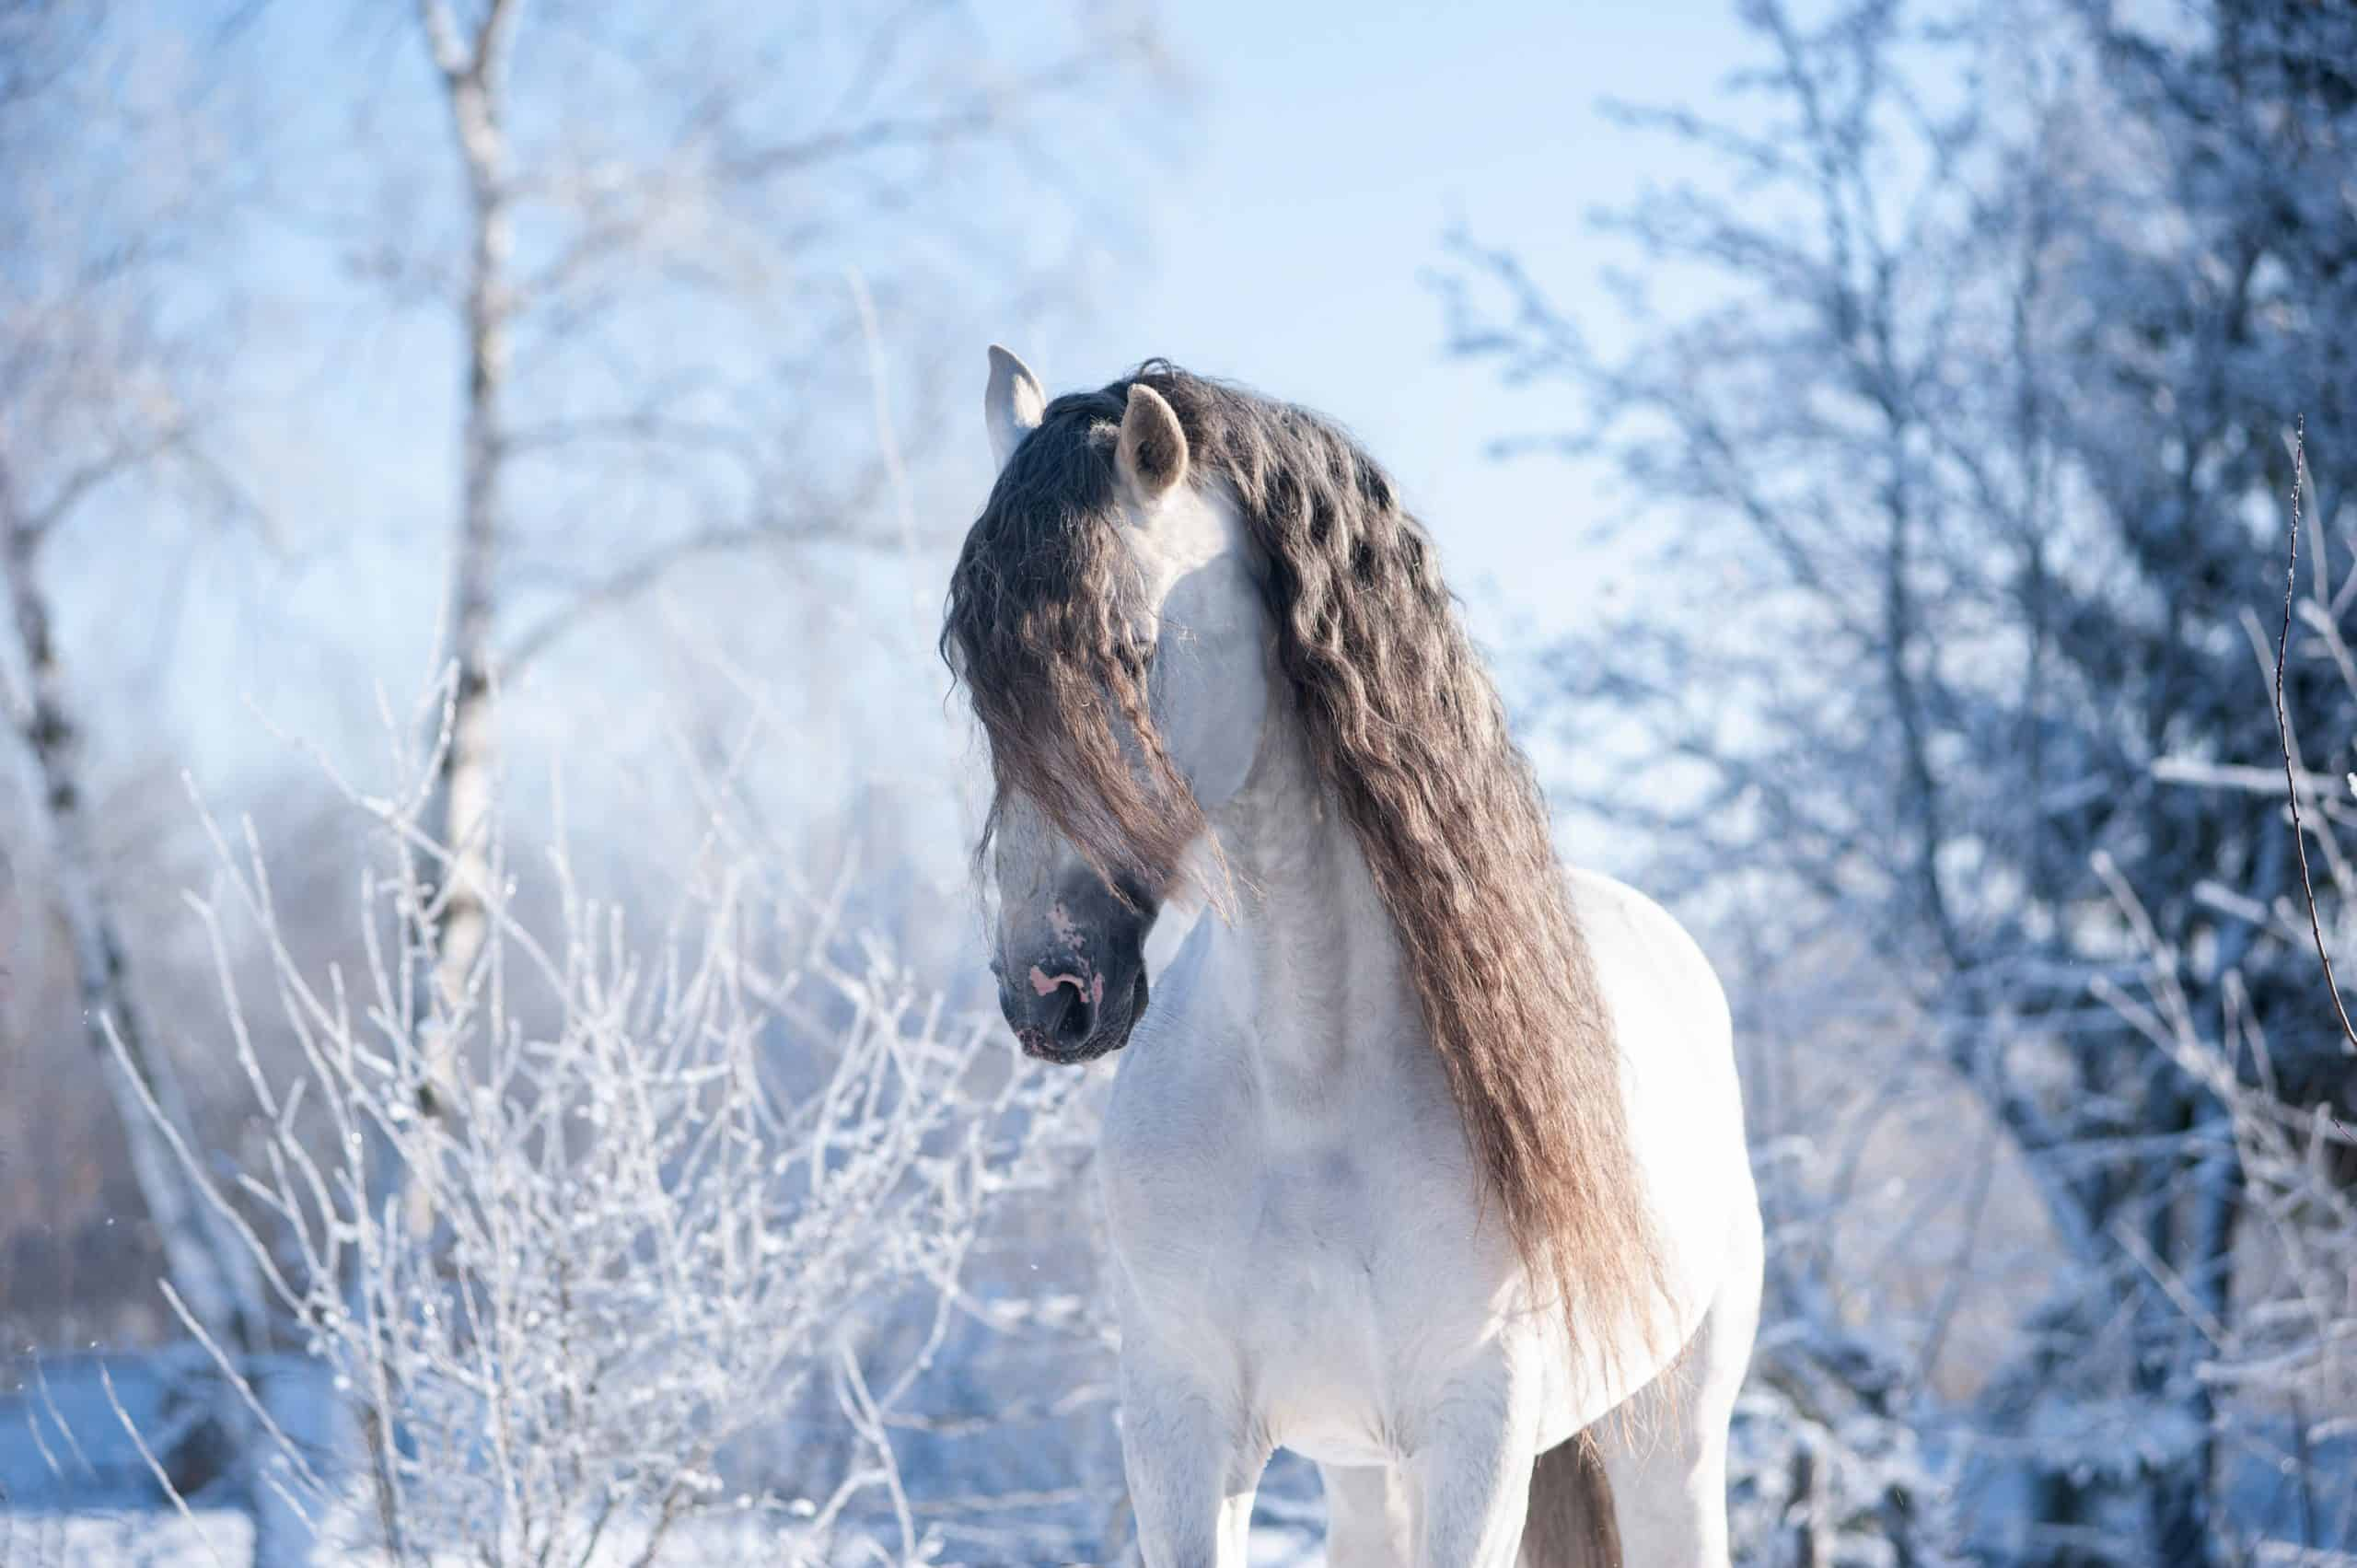 The Andalusian horse winter portrait